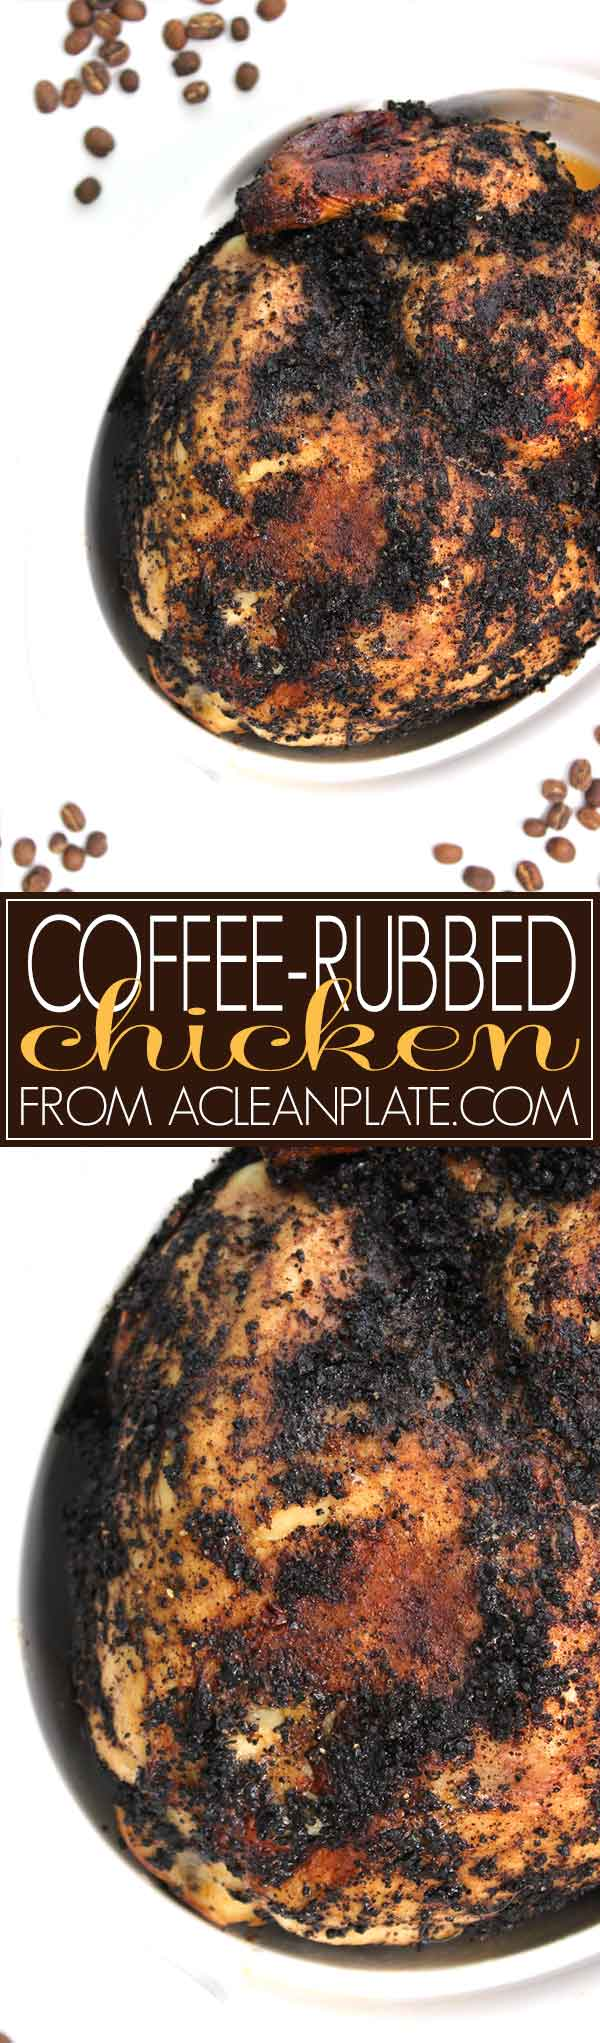 Coffee-Rubbed Chicken recipe from acleanplate.com